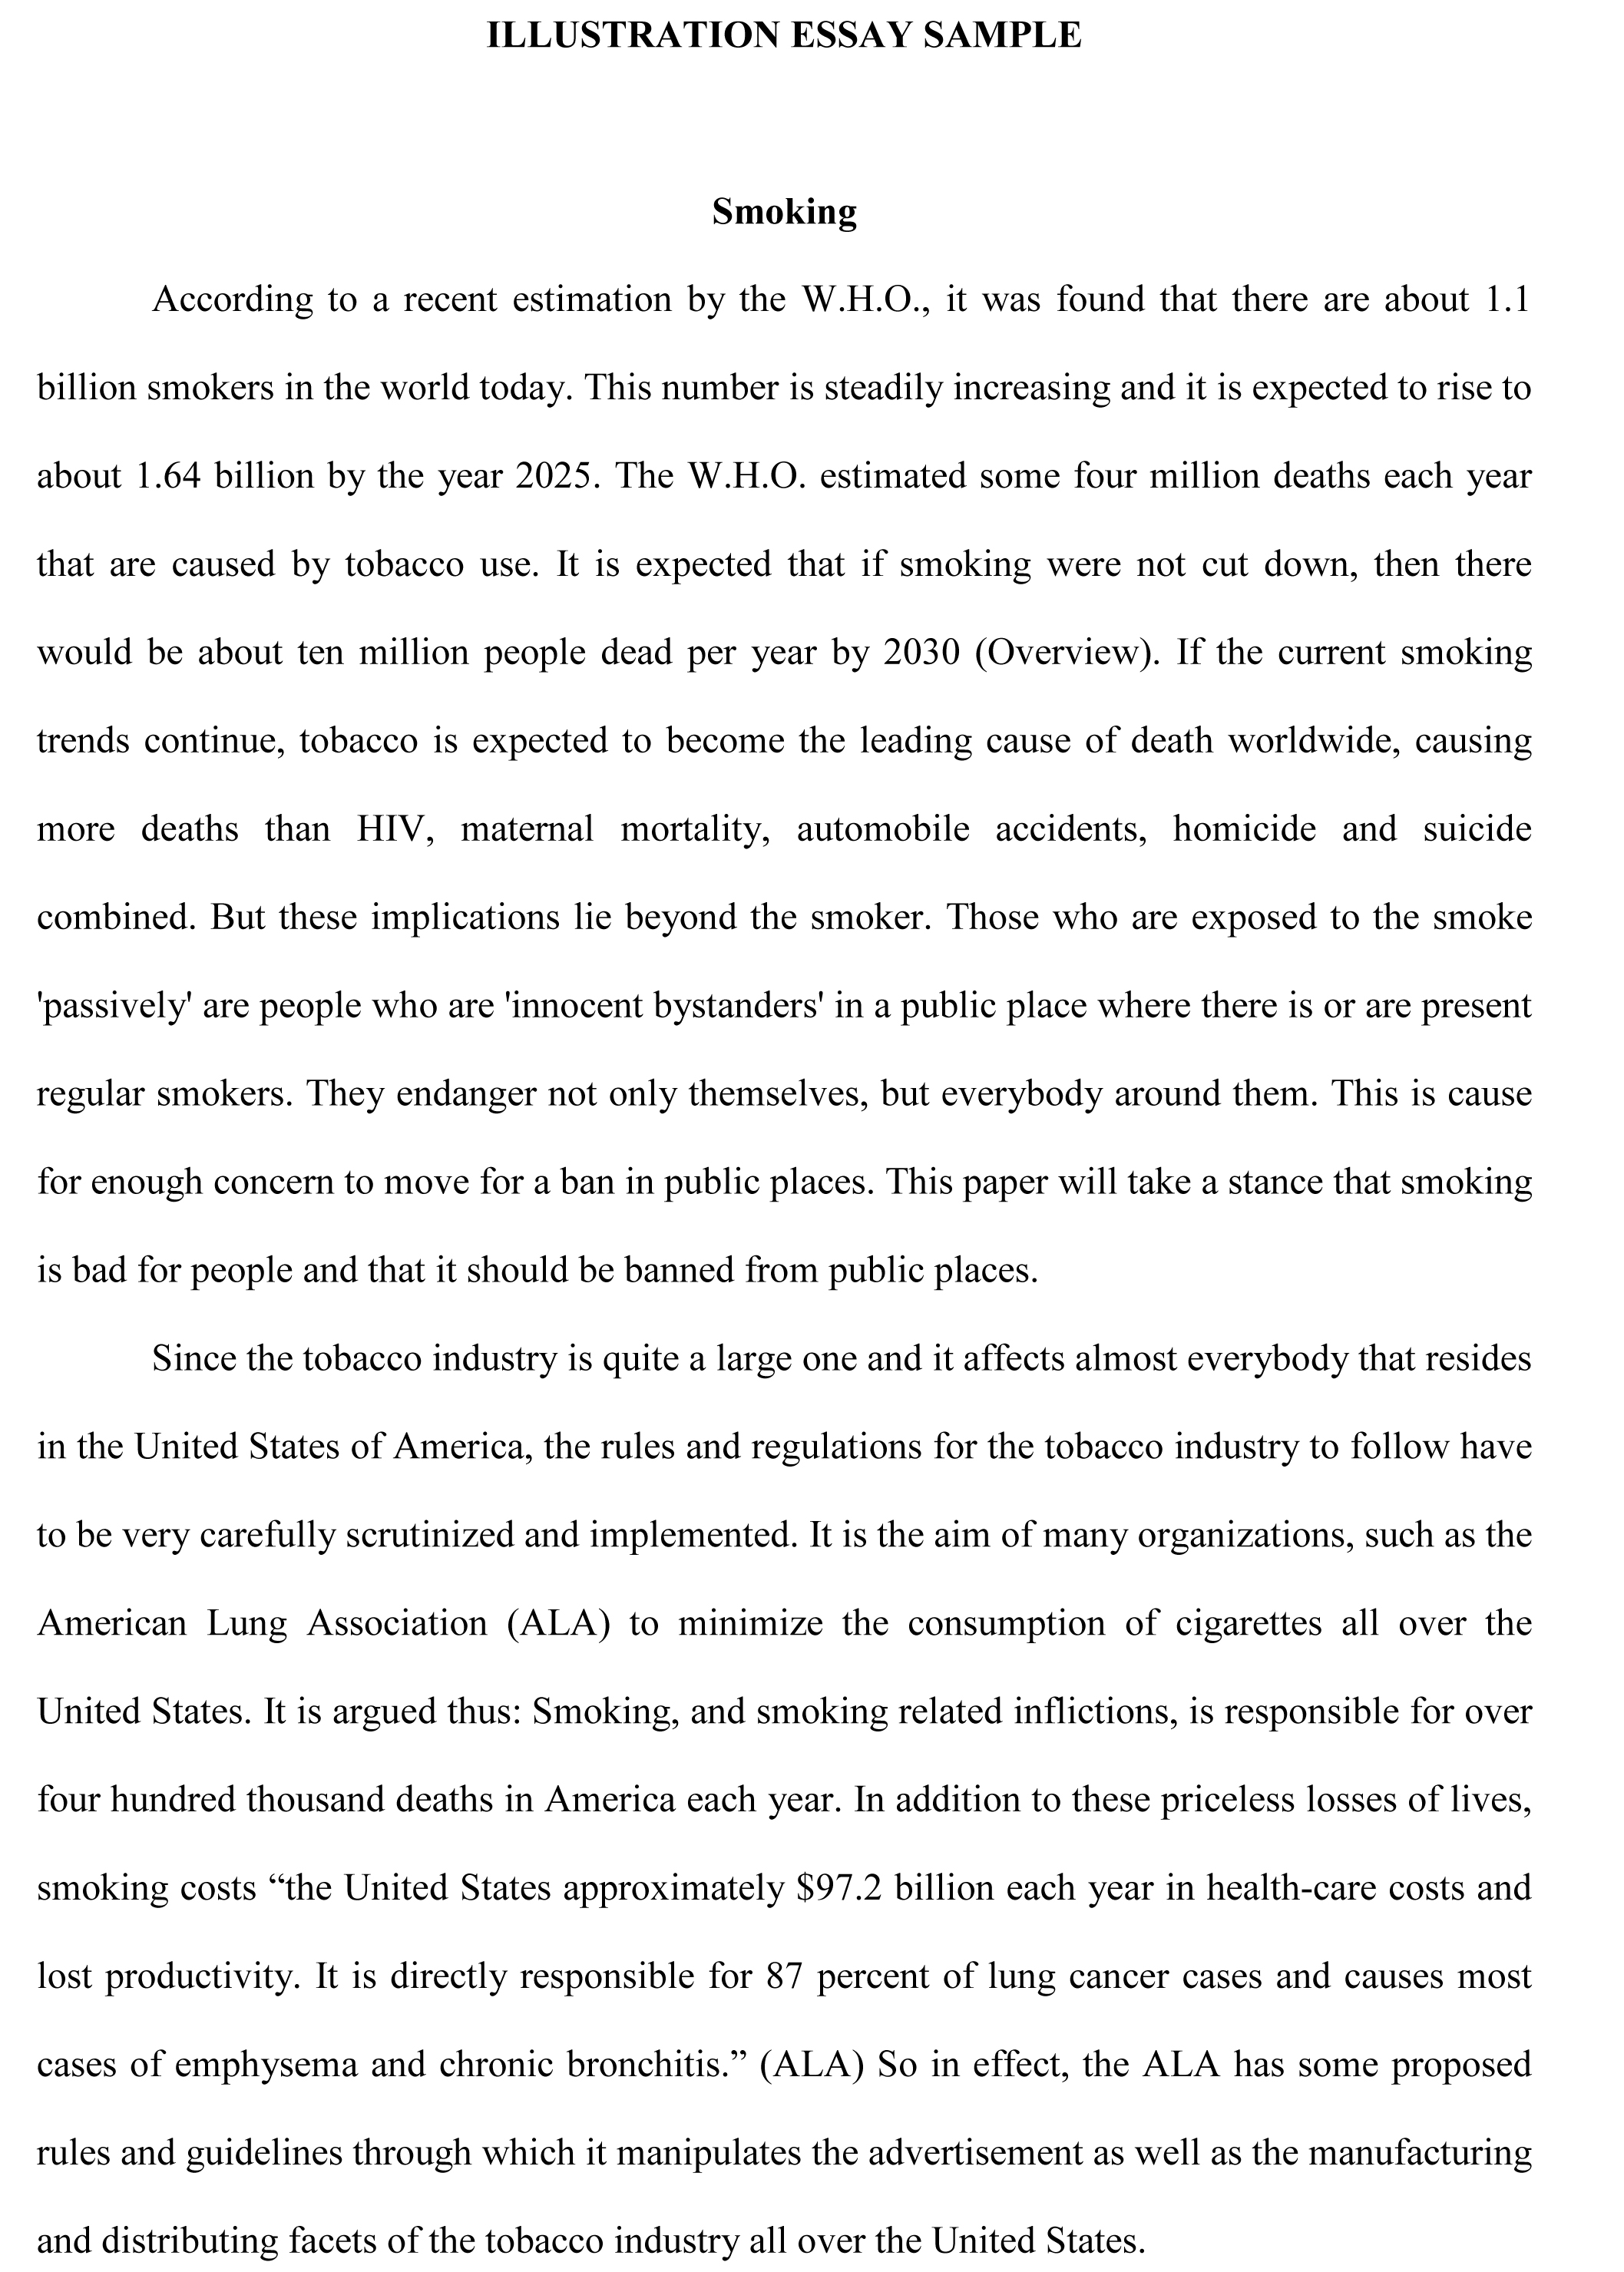 014 Illustration Essay Sample How To Write Autobiography Exceptional A An Conclusion For High School Sociological Full